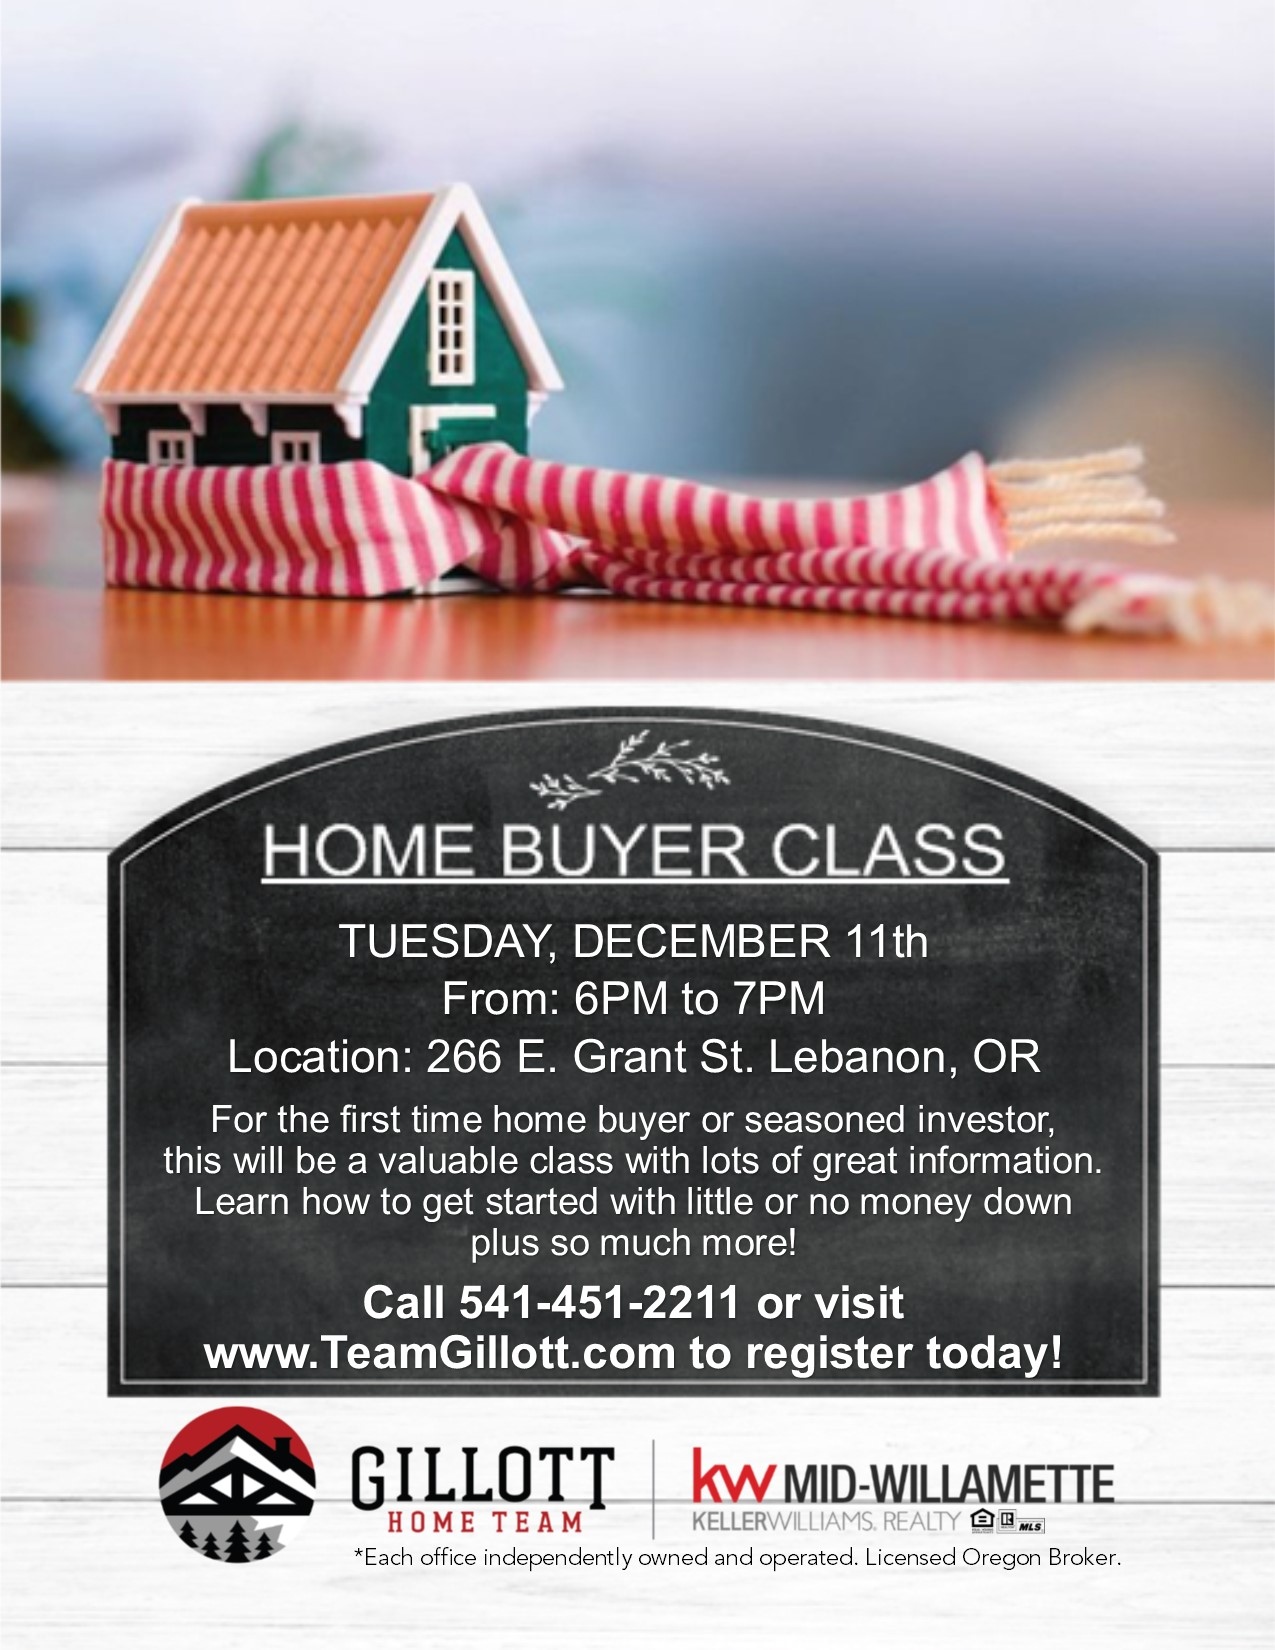 Home Buyer Class View Oregon Real Estate